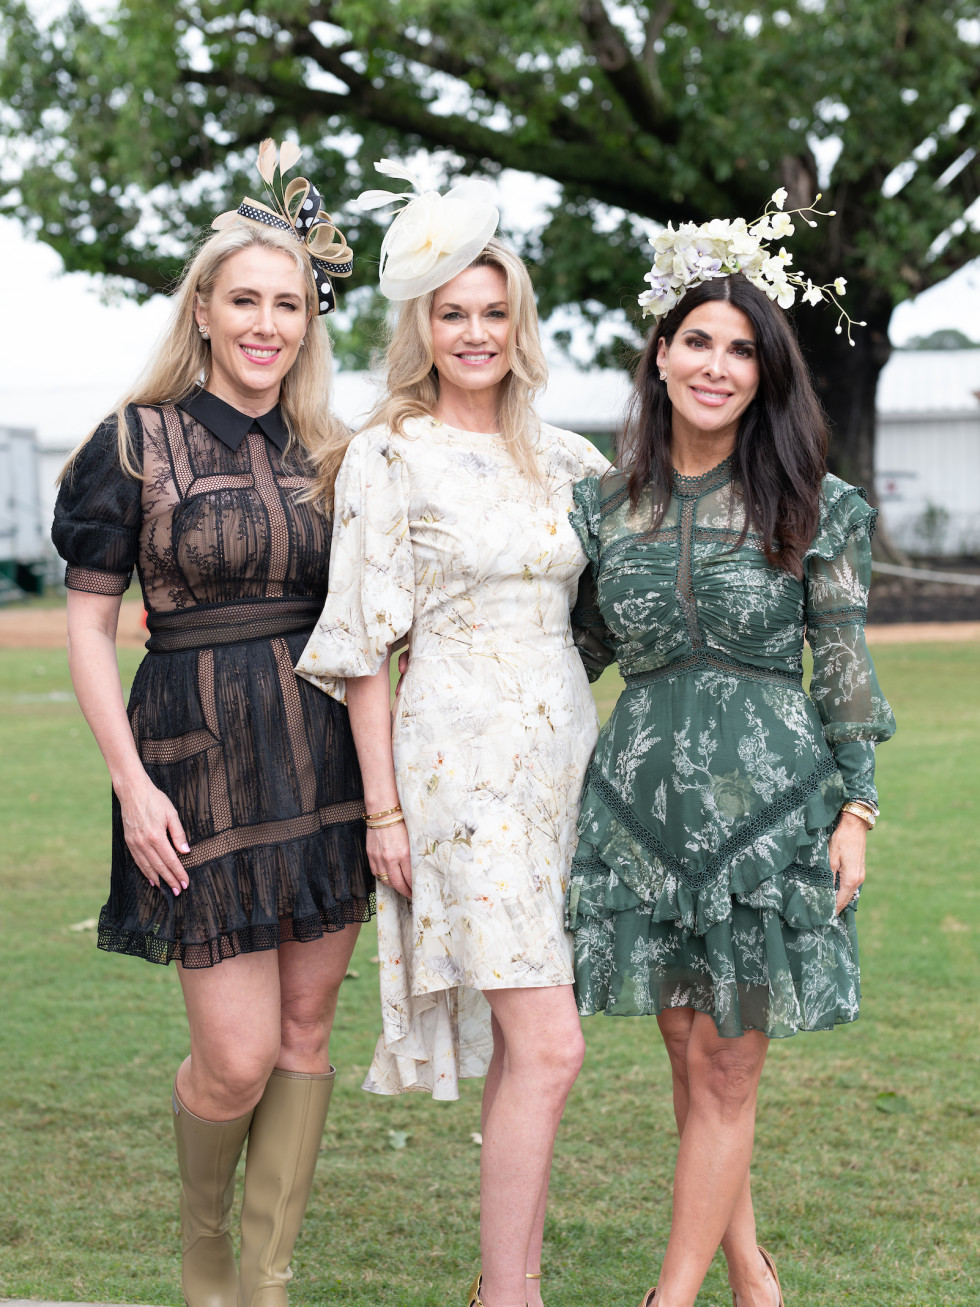 Bo's Place Kentucky Derby 2021 Houston Polo Club Christie Sullivan, Millette Sherman and Alissa Maples